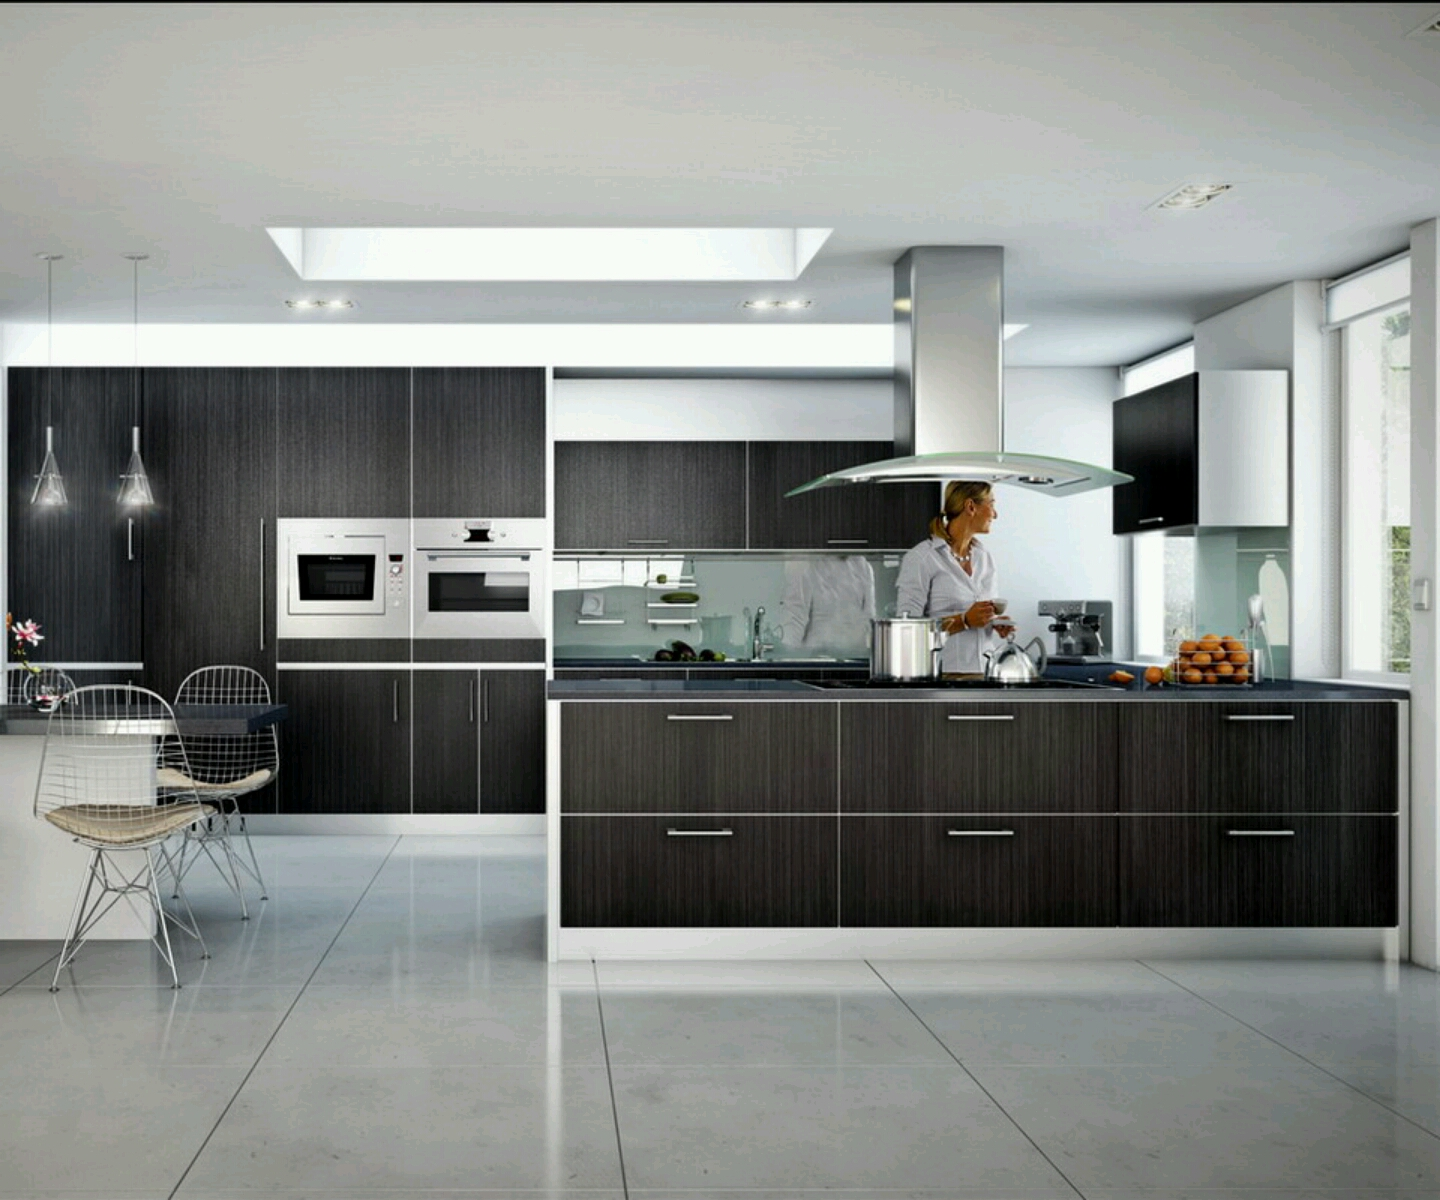 New home designs latest.: Modern homes ultra modern ... on Modern Kitchen Design  id=20357